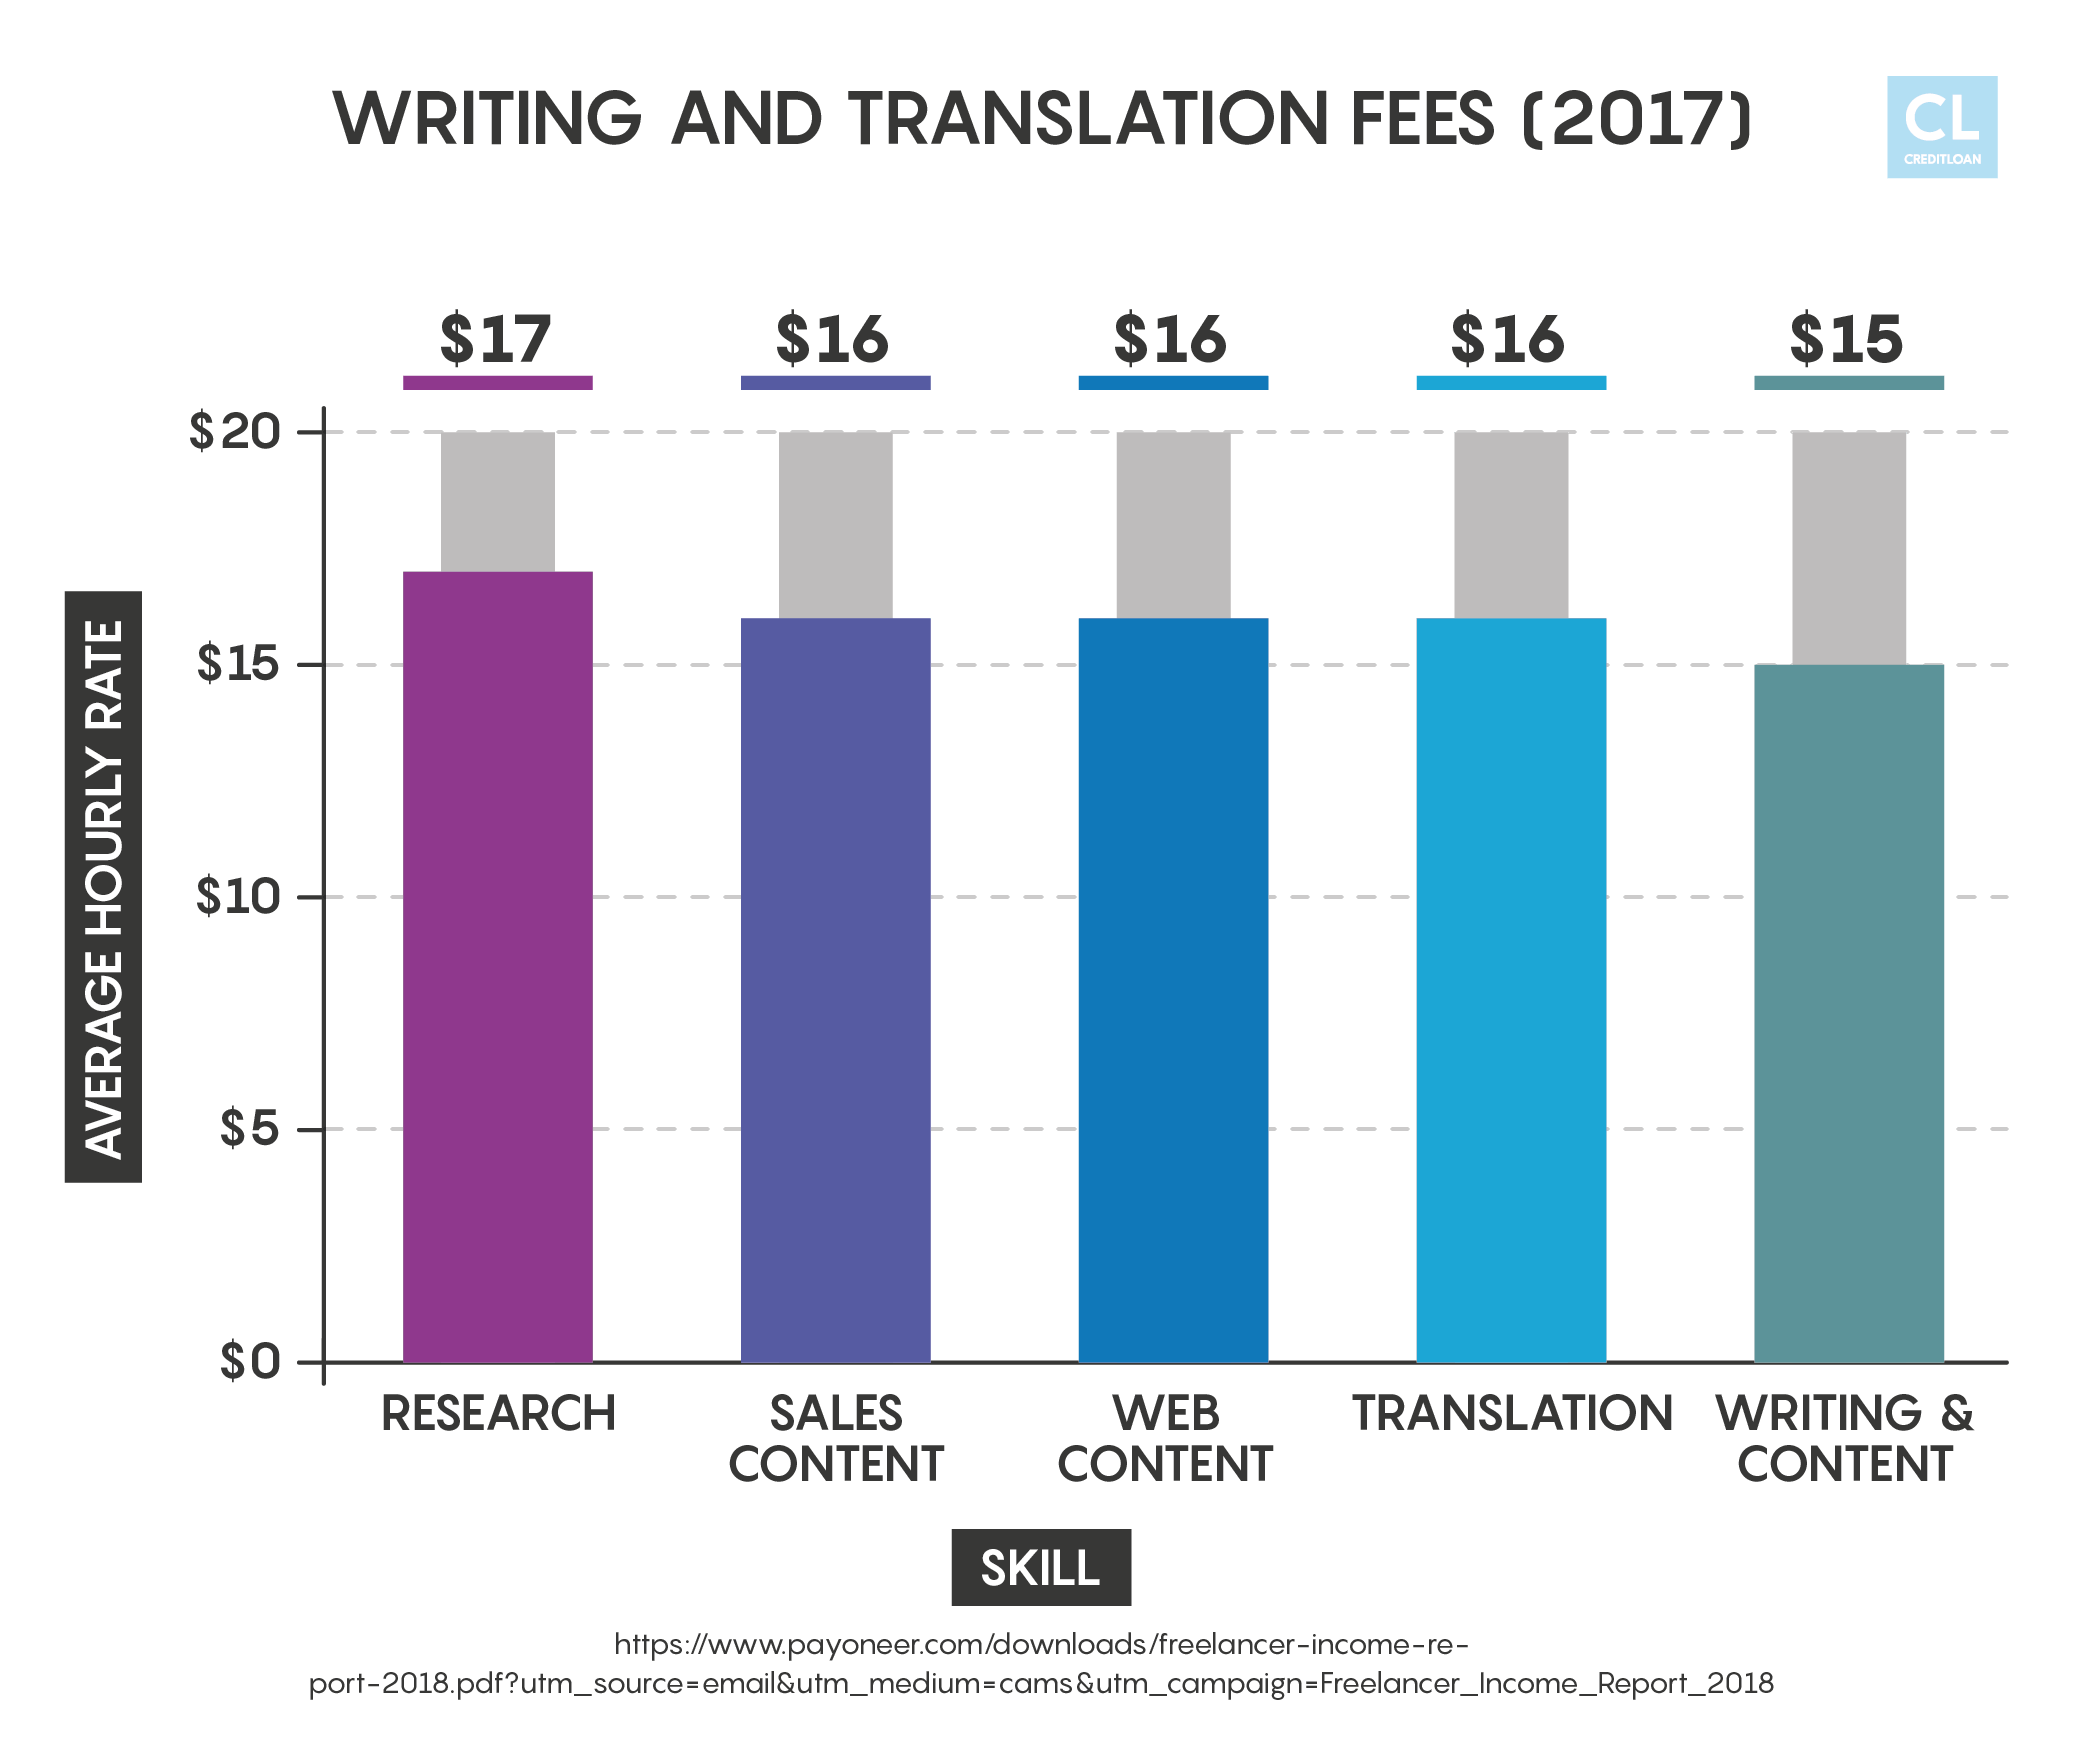 Writing and Translation Fees